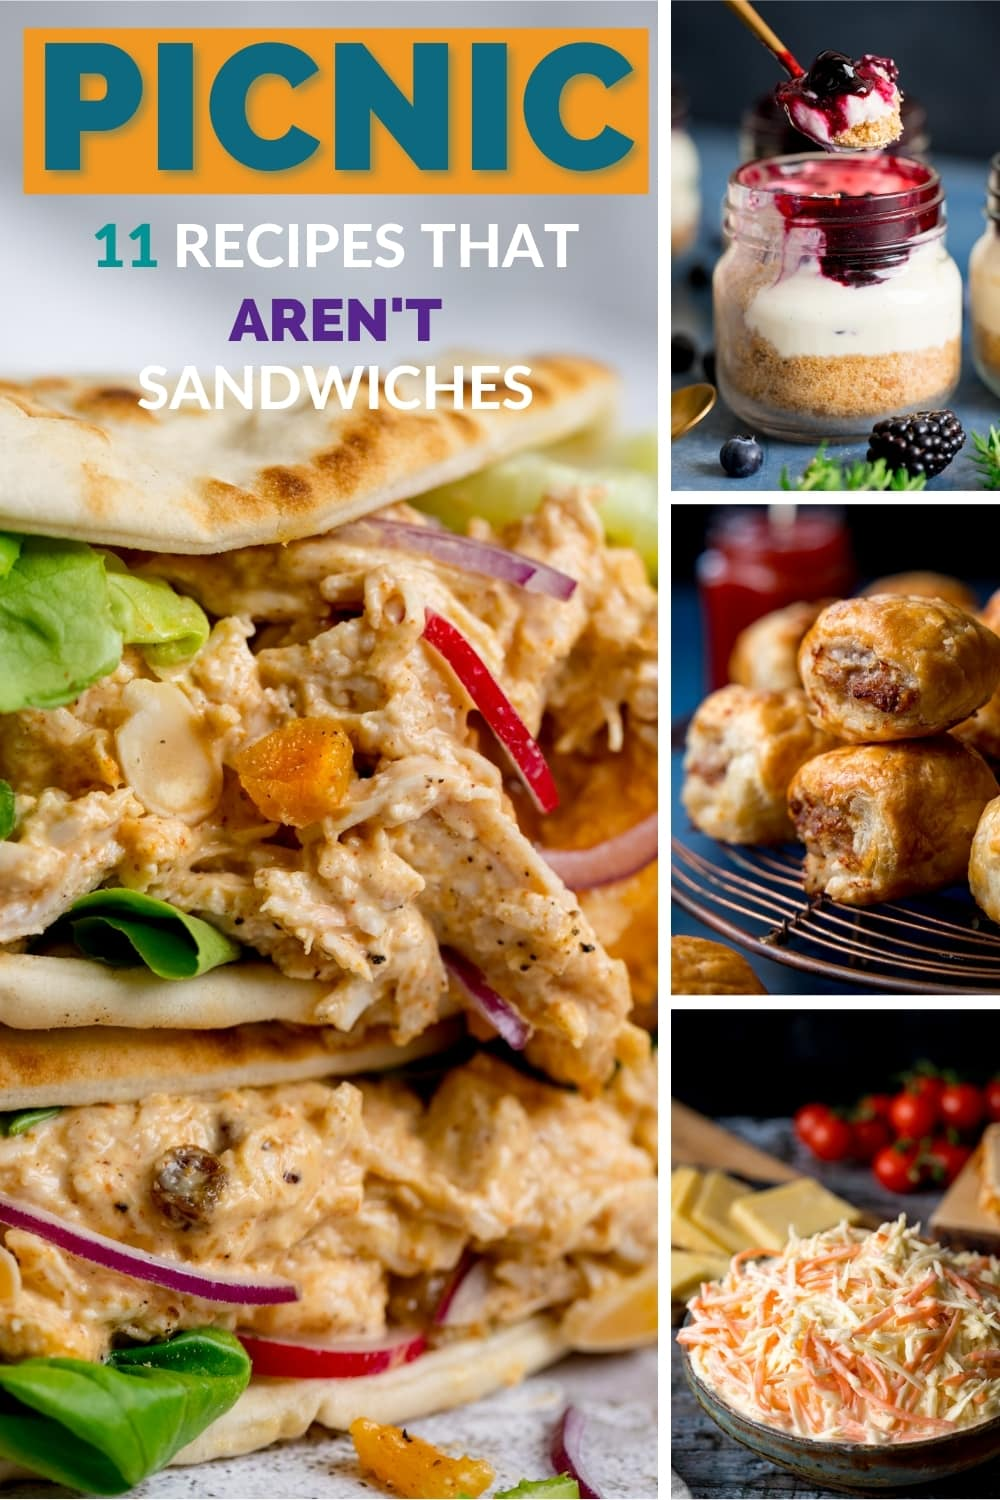 Collage of 4 images showing some picnic food ideas.